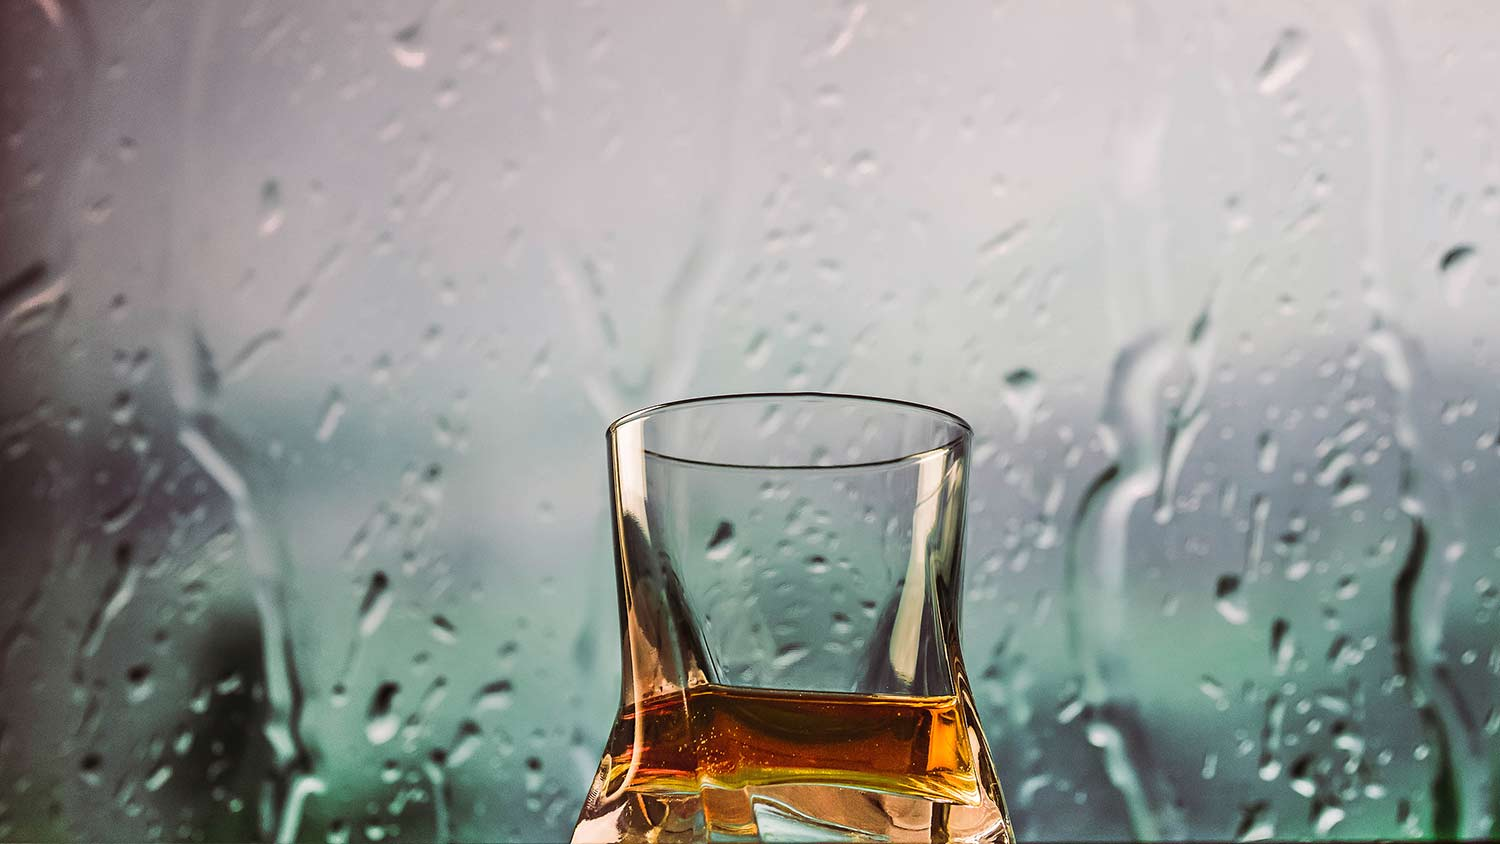 Share a bottle with your friends on a rainy day